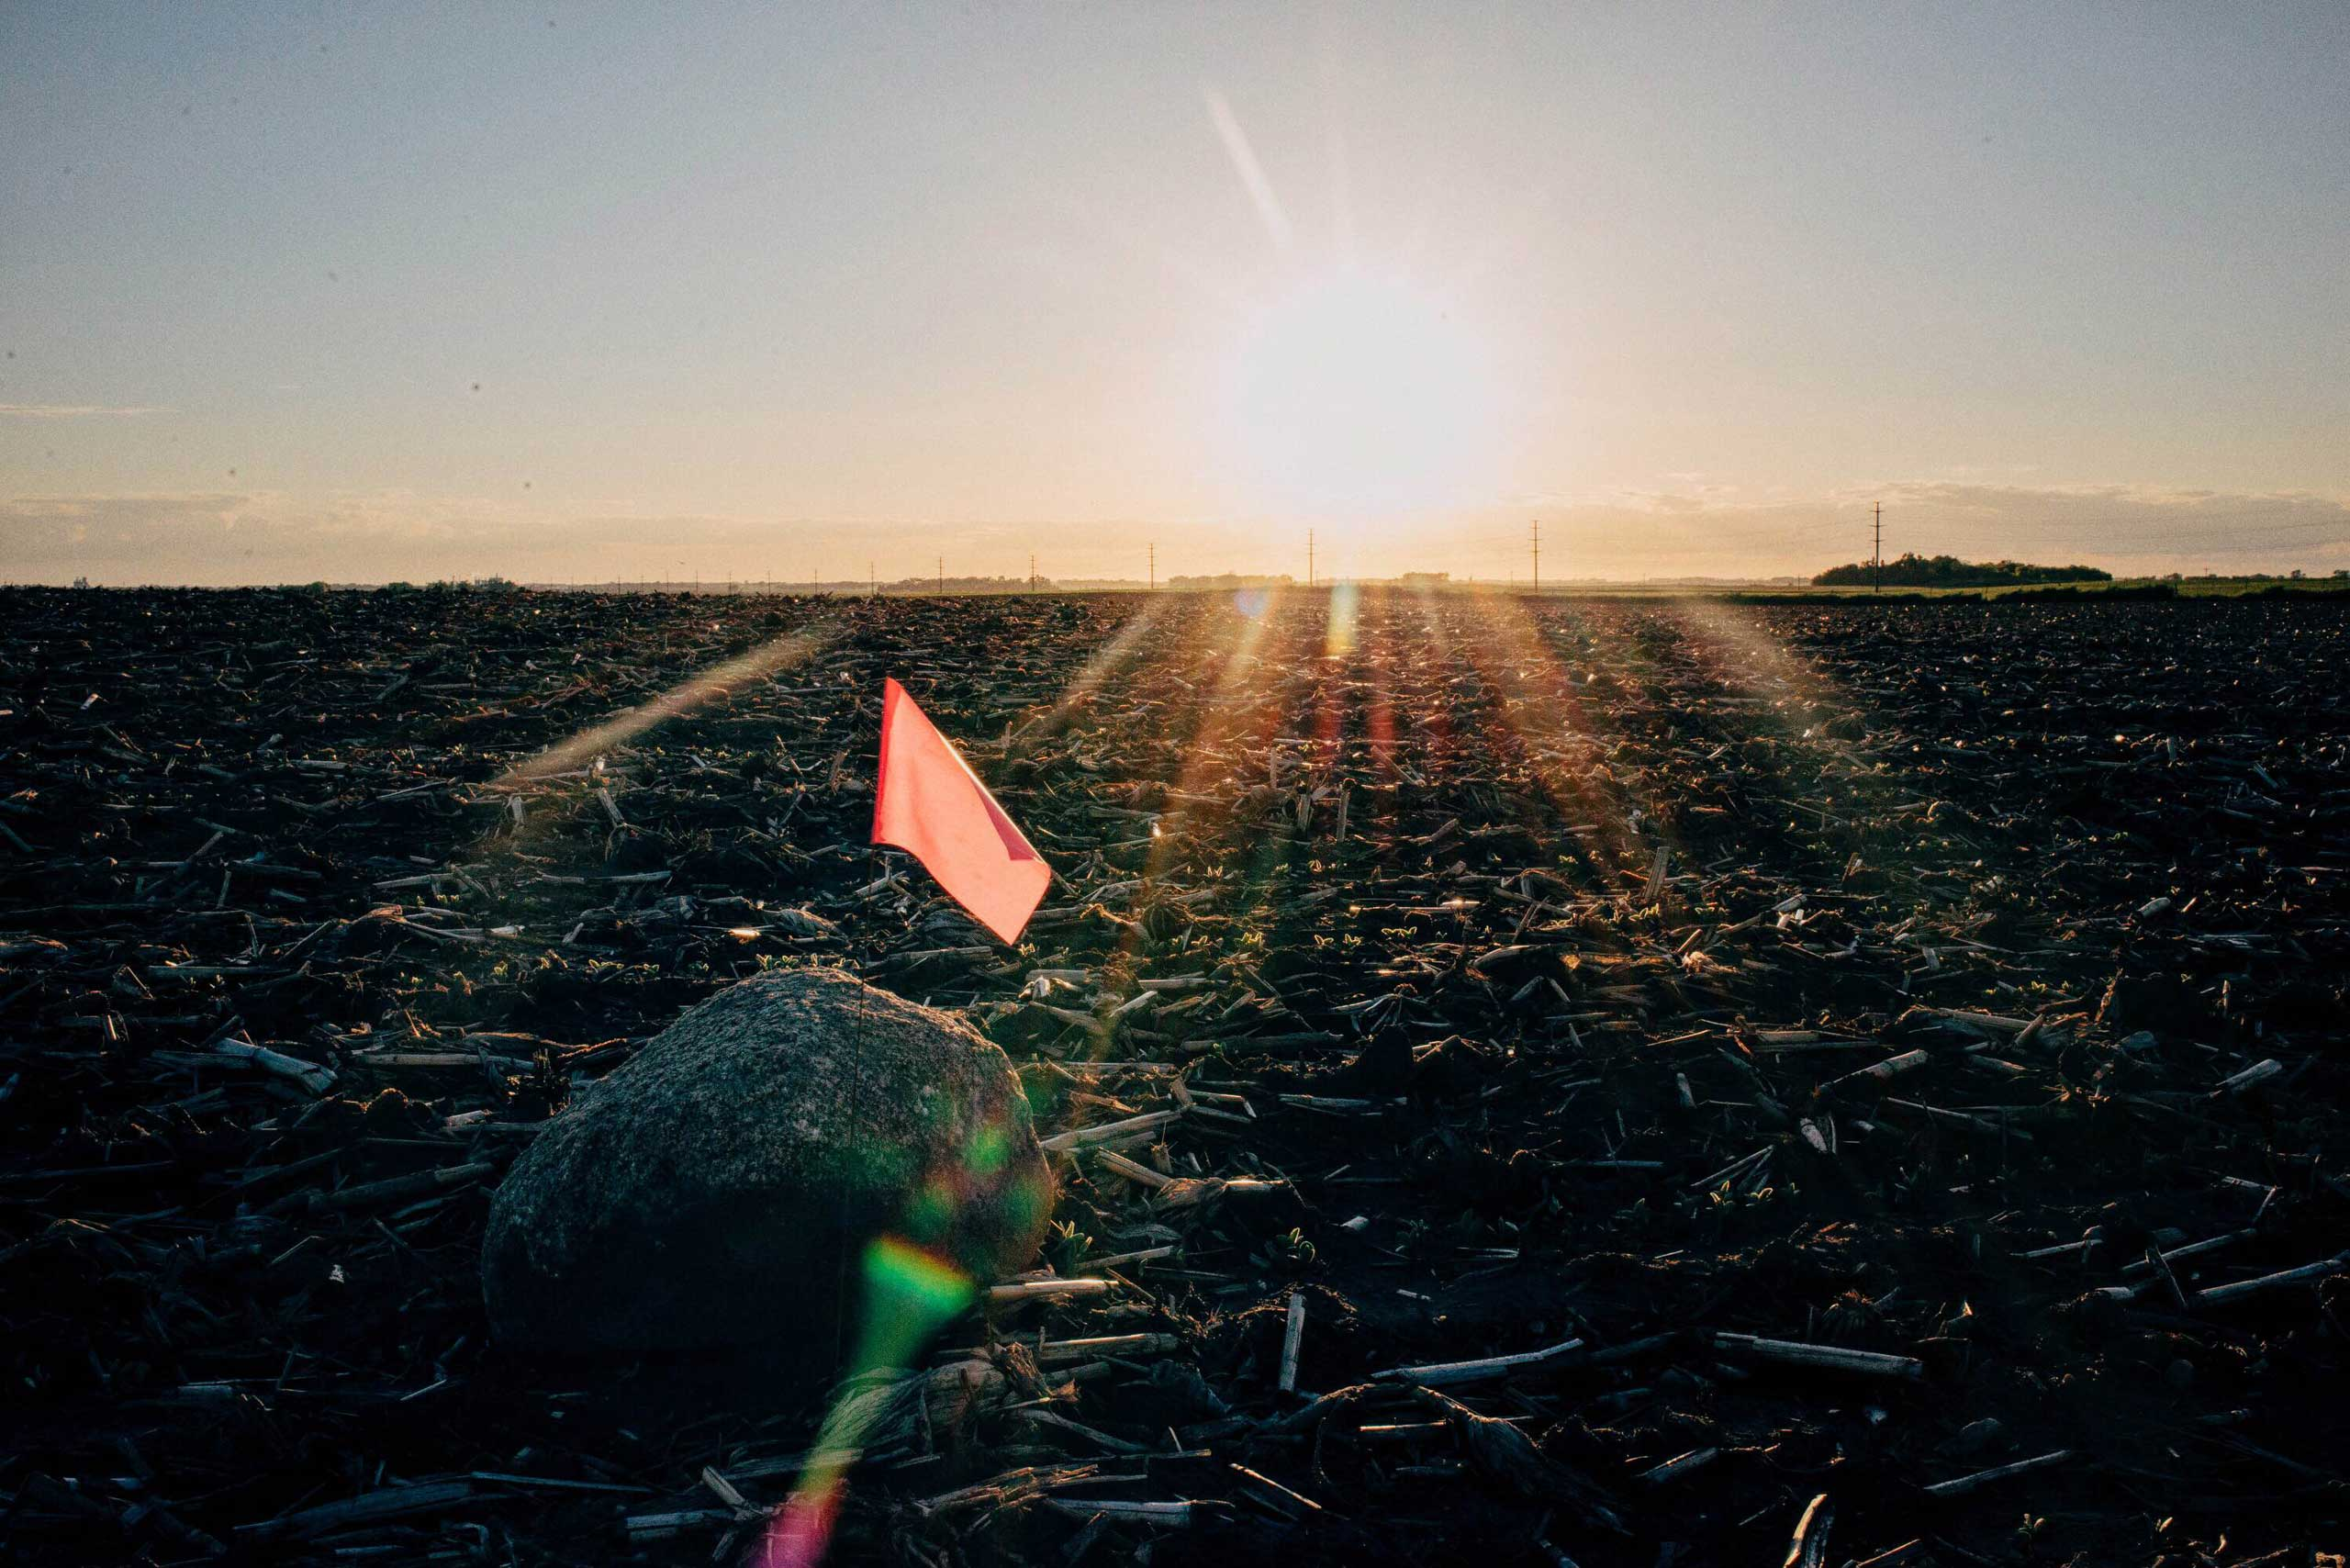 A large rock sits flagged in Delafield Township, Minnesota on May 31, 2016. While rock picking, if the found rock is too big to pick up by hand, the crew flags it and comes back with a loader later.